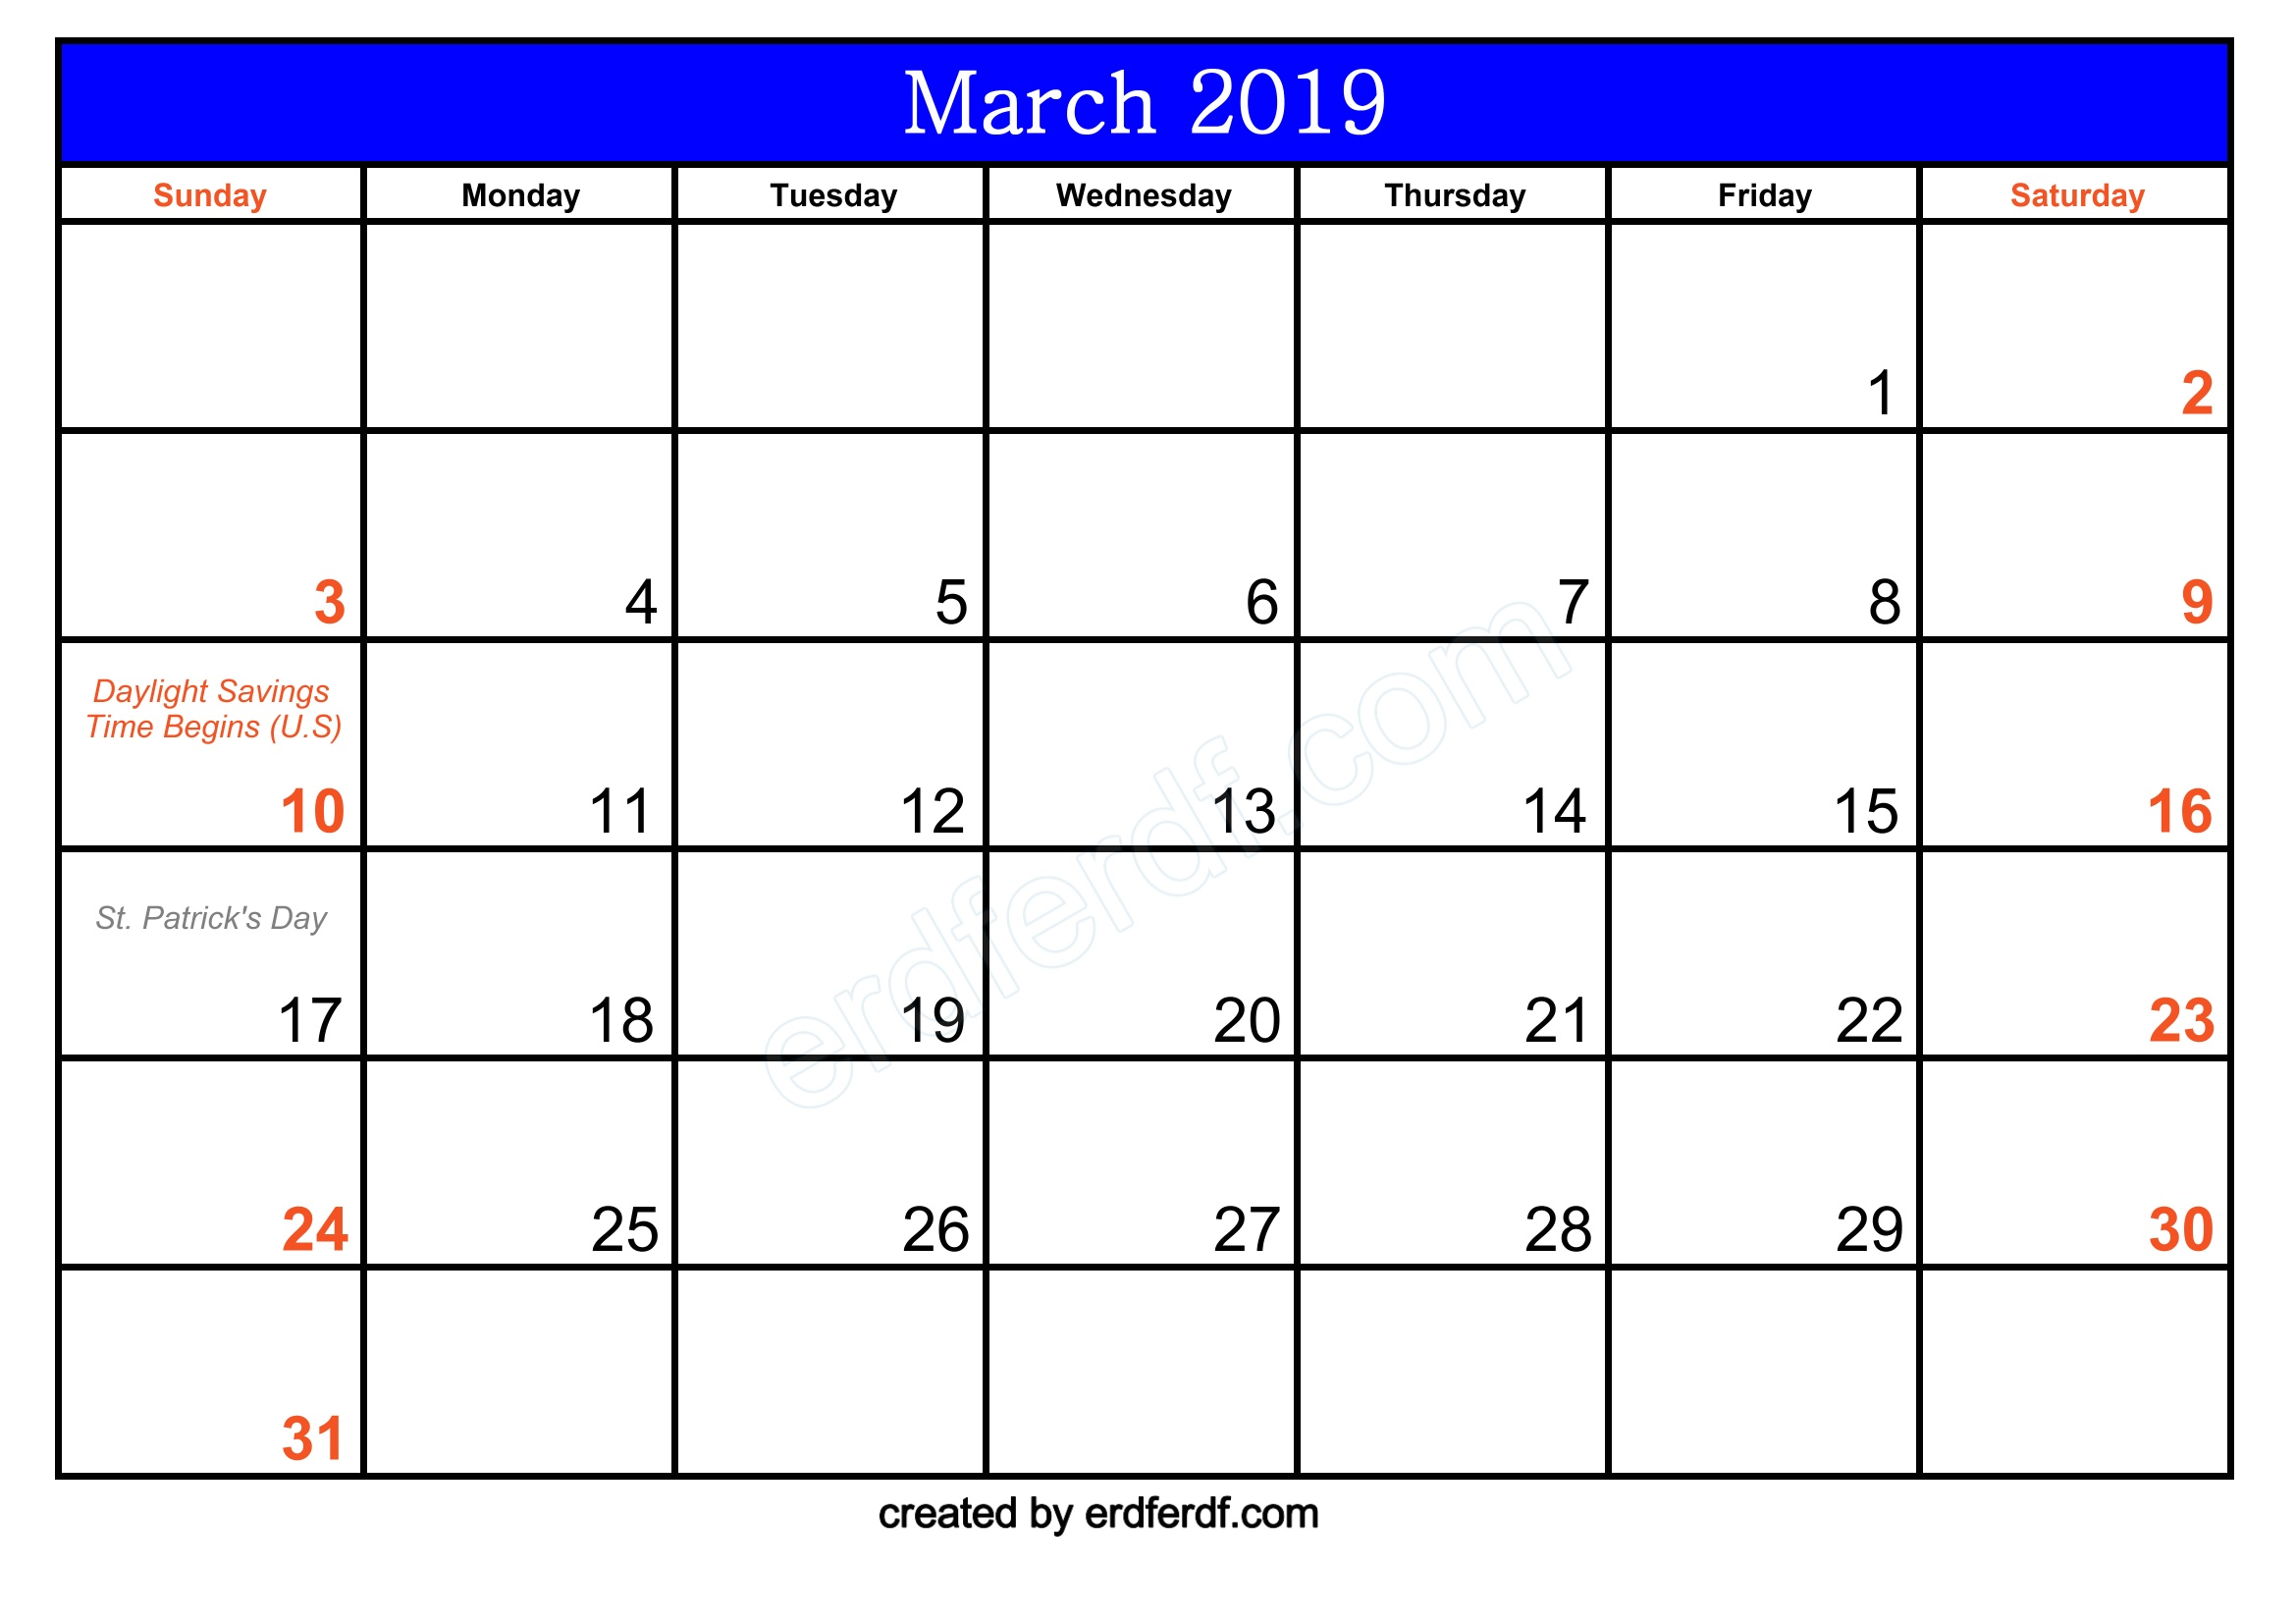 Free March 2019 Printable Calendar With Holidays Download